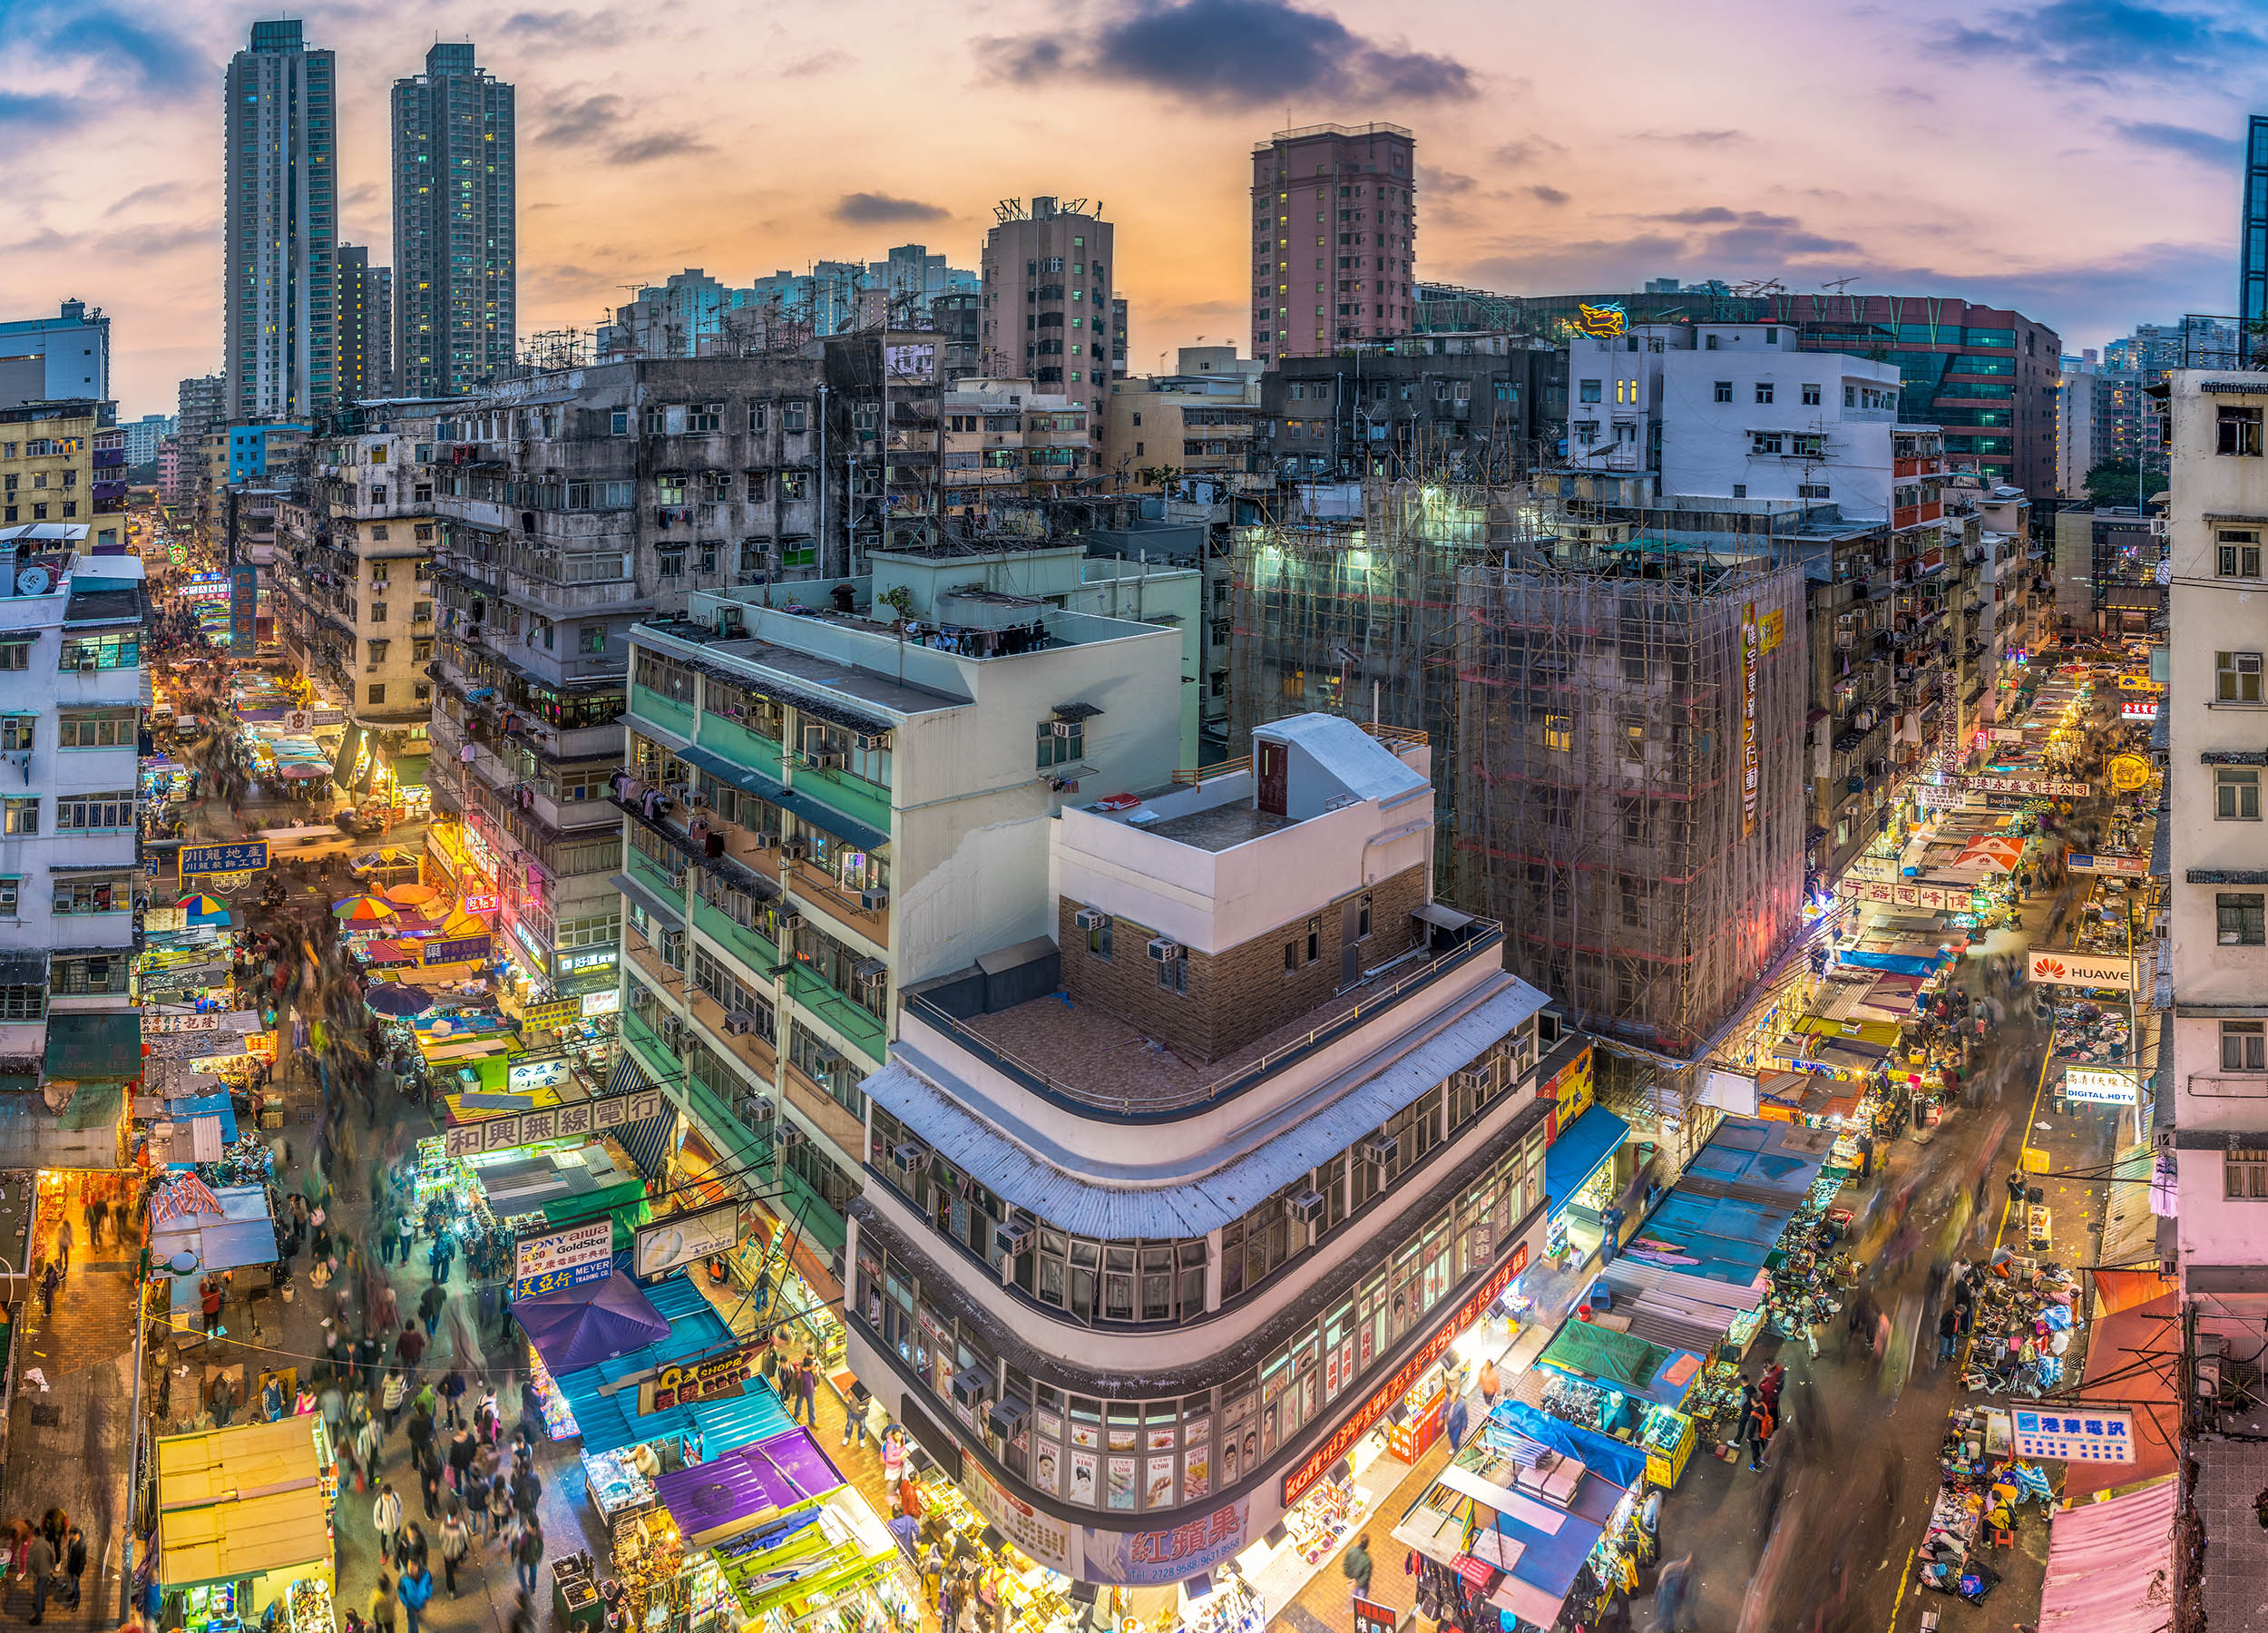 The streets of Sham Shui Po, an area situated in the northwestern part of the Kowloon Peninsula, glow with energy at dusk